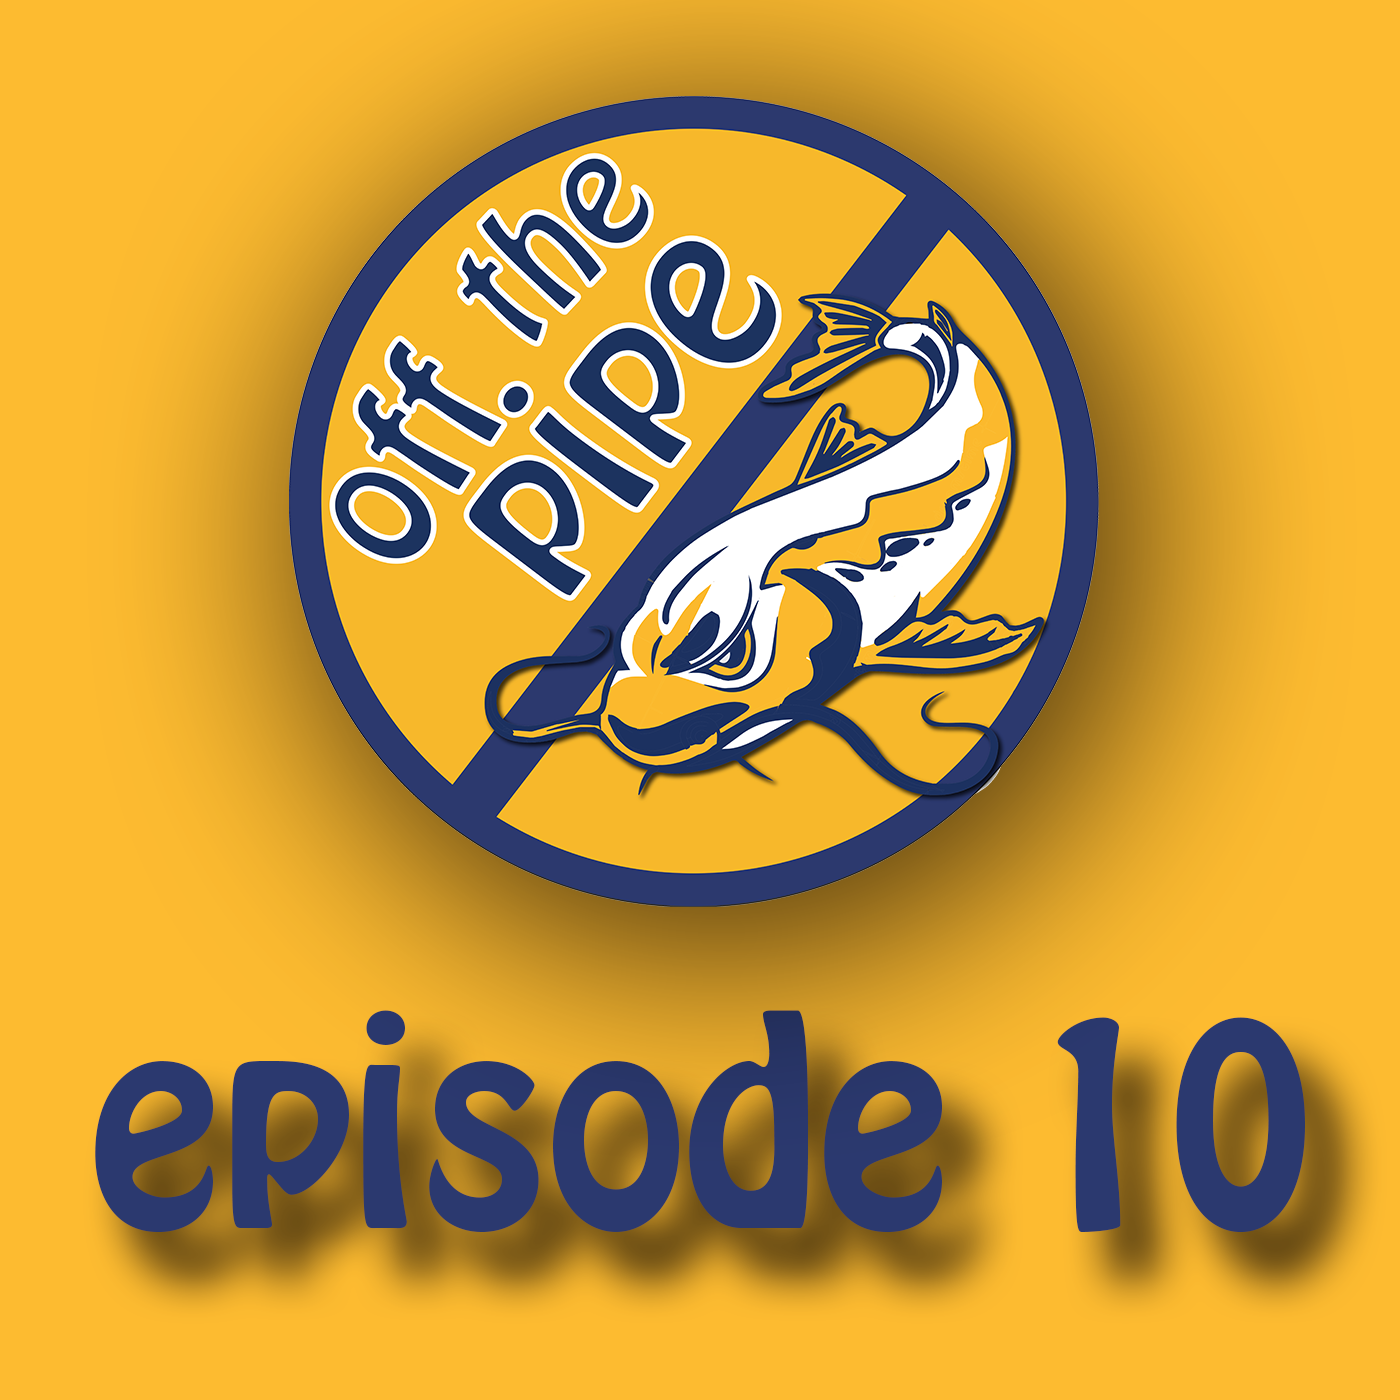 Off the Podcast 10: What is going on with the Predators?